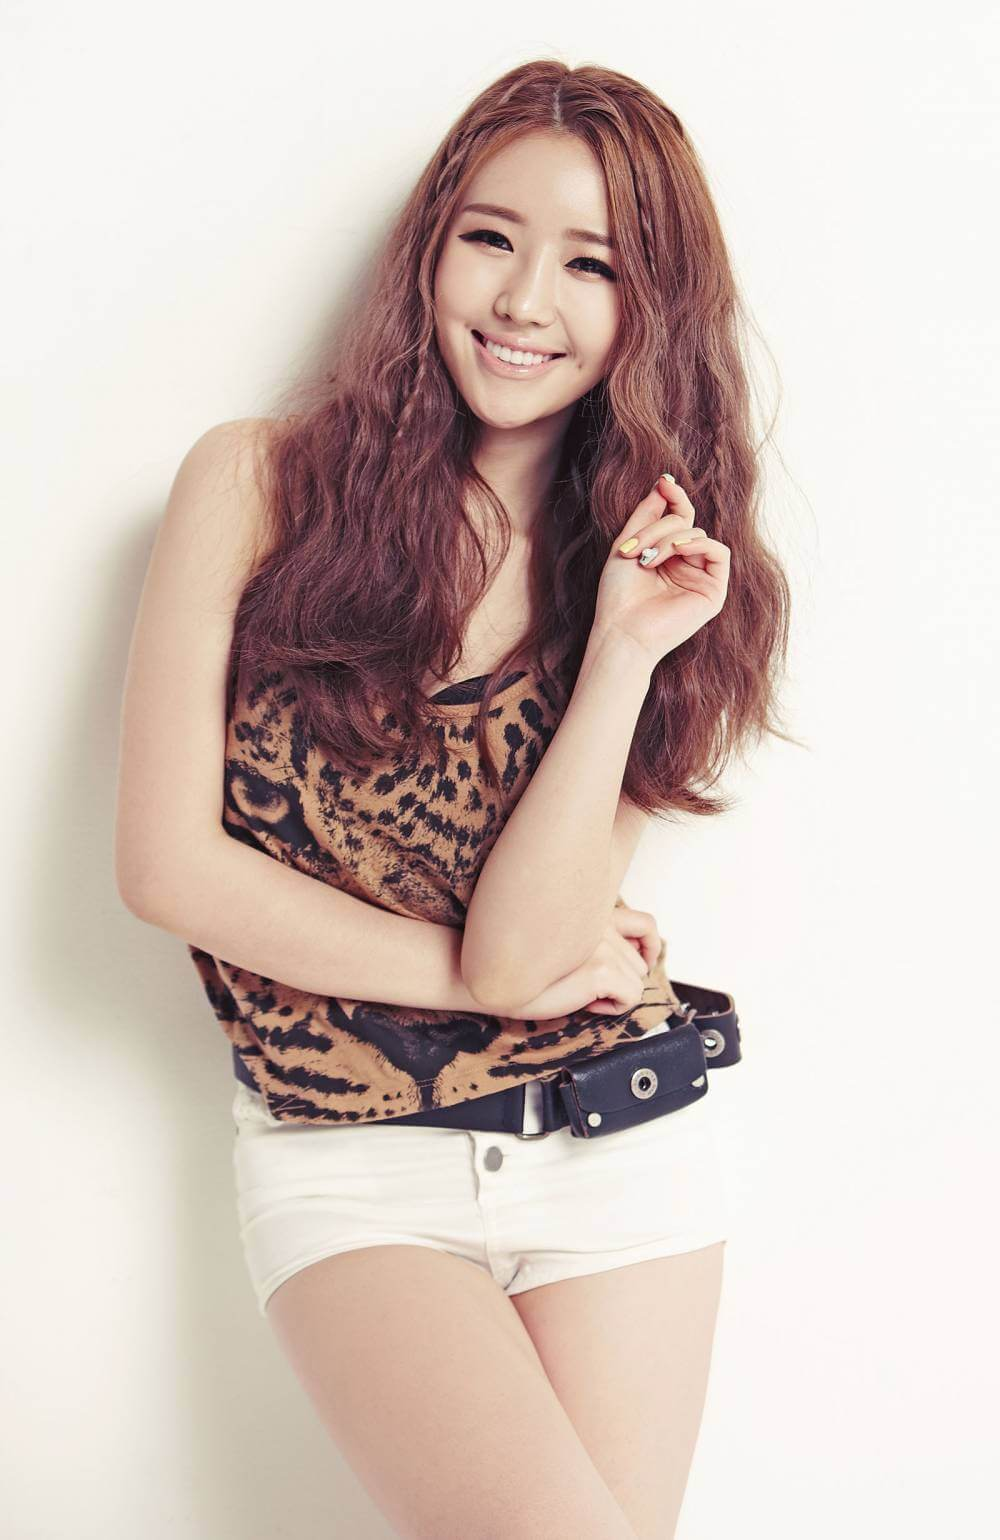 Jiyul – Dal Shabet hot smile